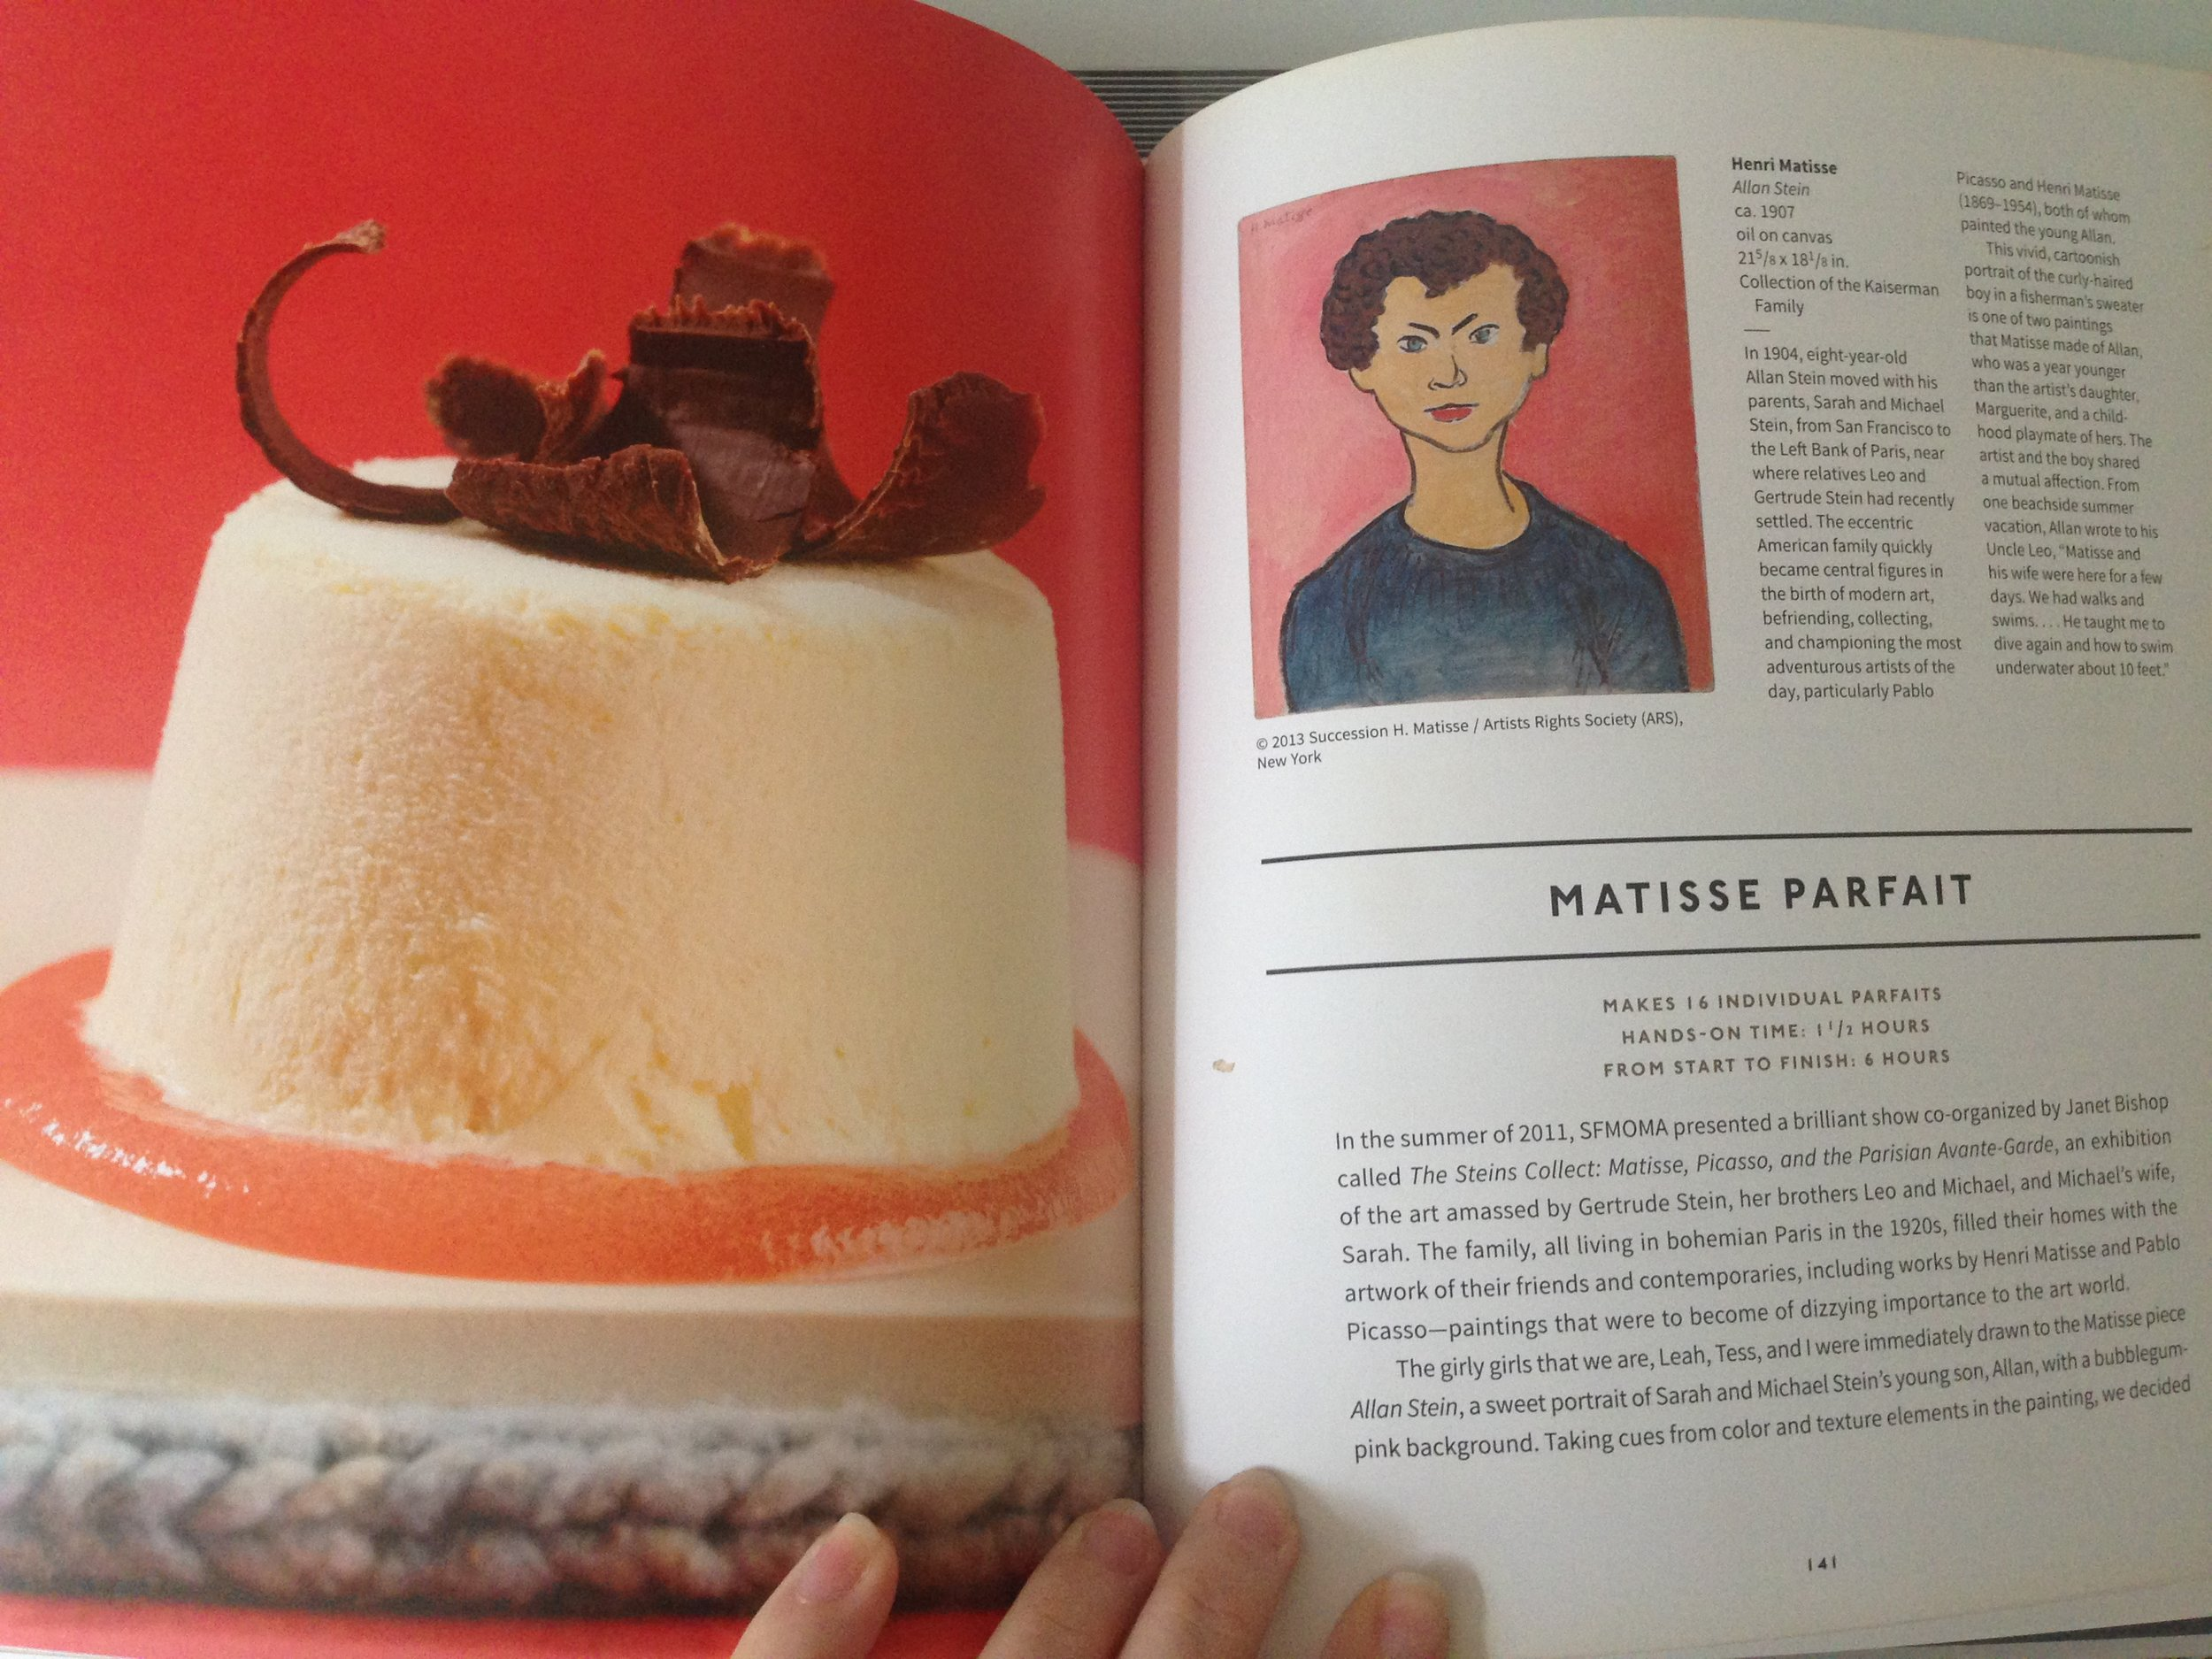 Learn how to make a Matisse inspired parfait in  Modern Art Desserts.  Like Donkey in  Shrek  you too will discover how everyone loves parfait (and onions have layers).